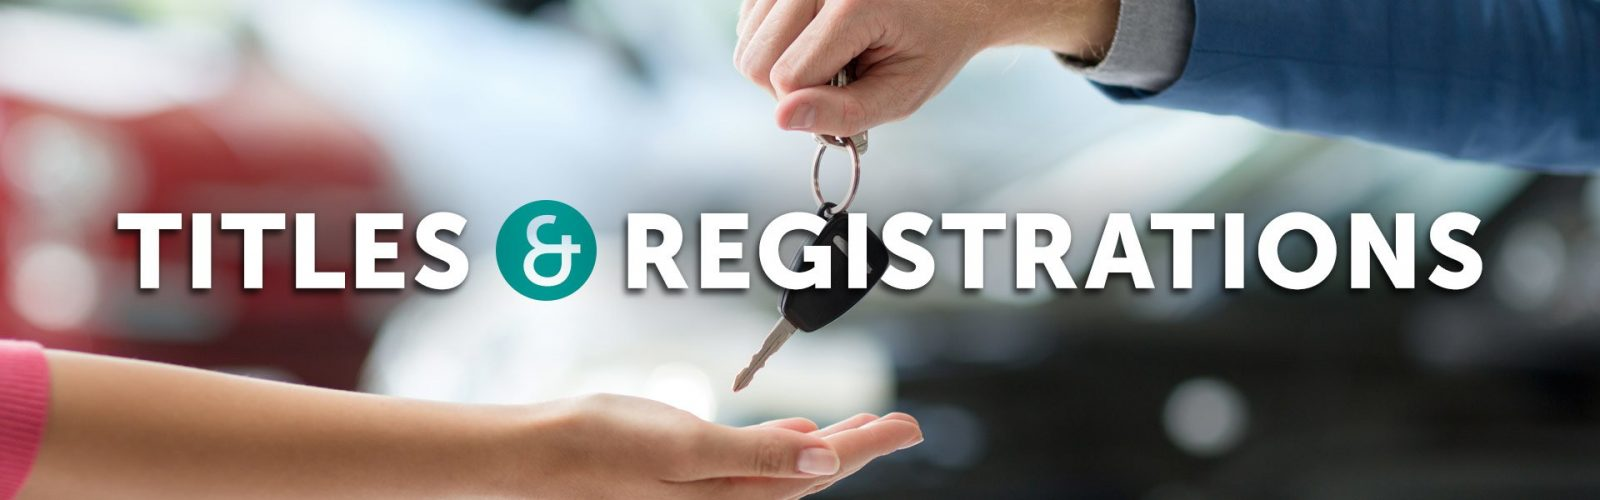 Titles-and-Registrations-Header